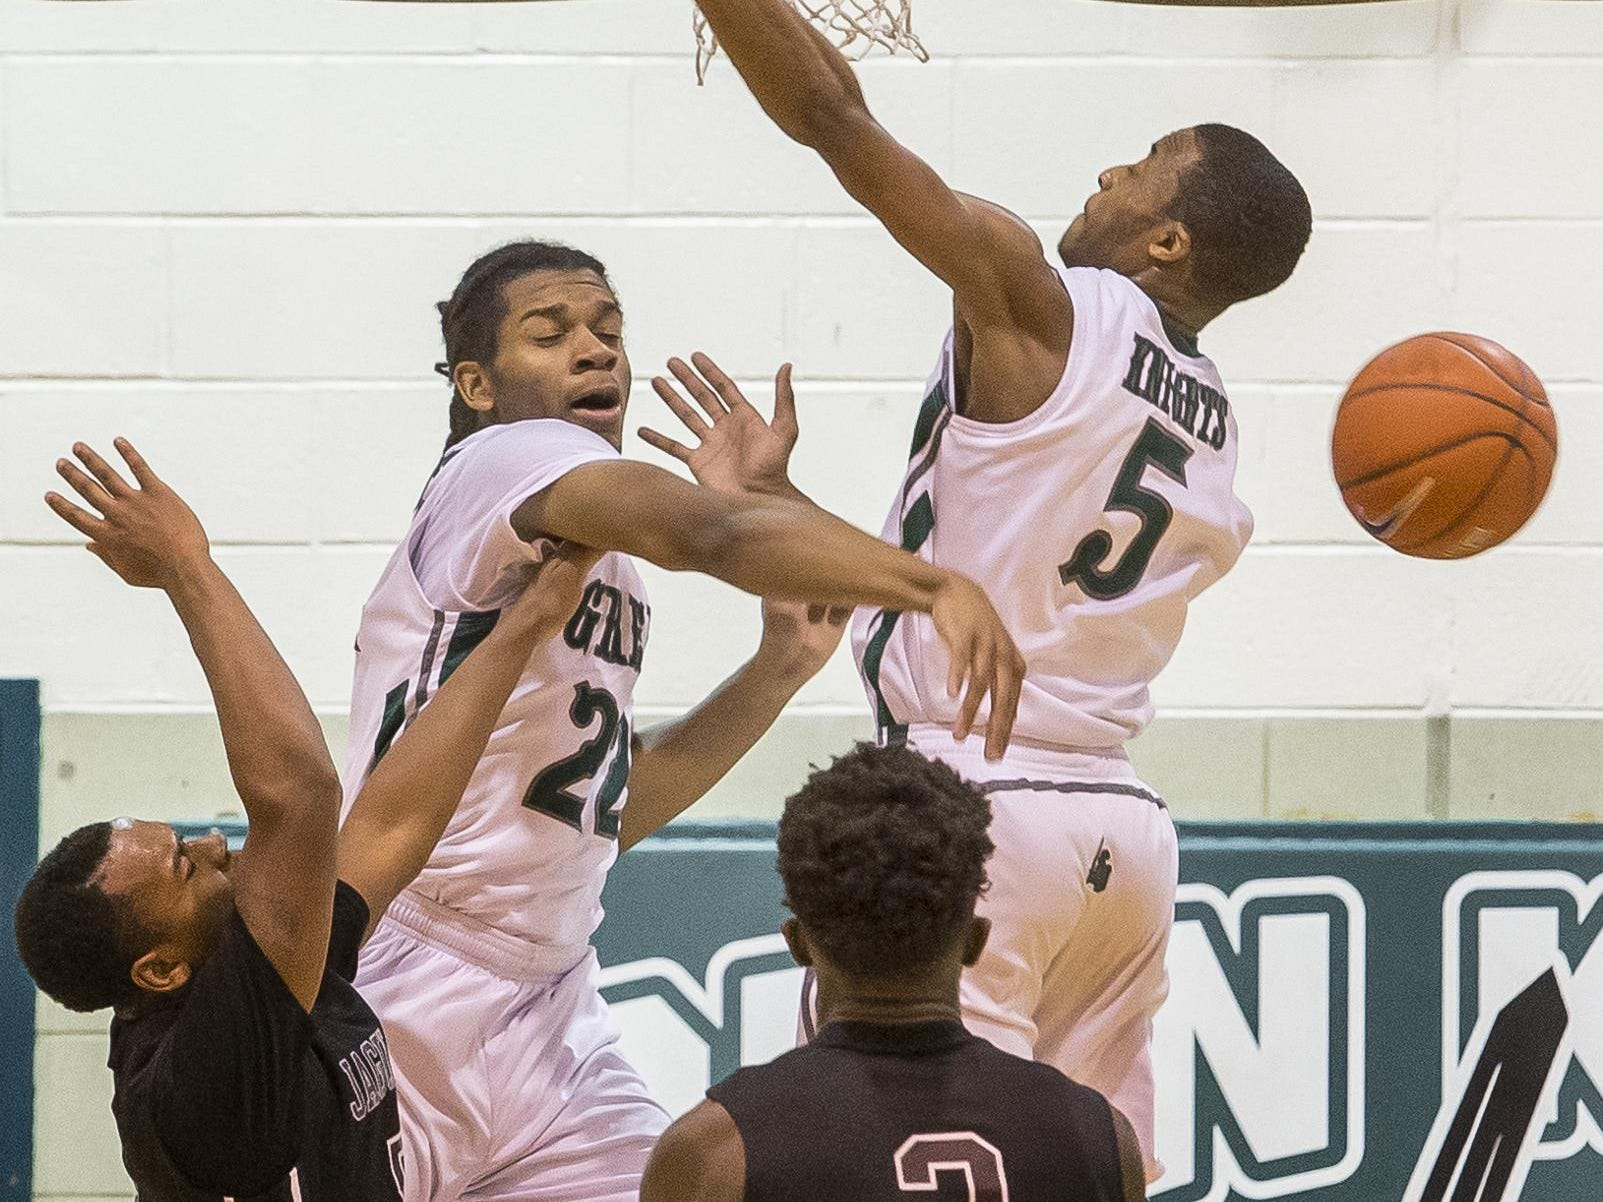 Mount Pleasant's Keynon Fetlow (left) blocks a shot from Appoquinimink's Keith DeLoatch in the first half of Mount Pleasant's 79-60 win over Appoquinimink High School at Mount Pleasant High School in Wilmington on Tuesday evening.